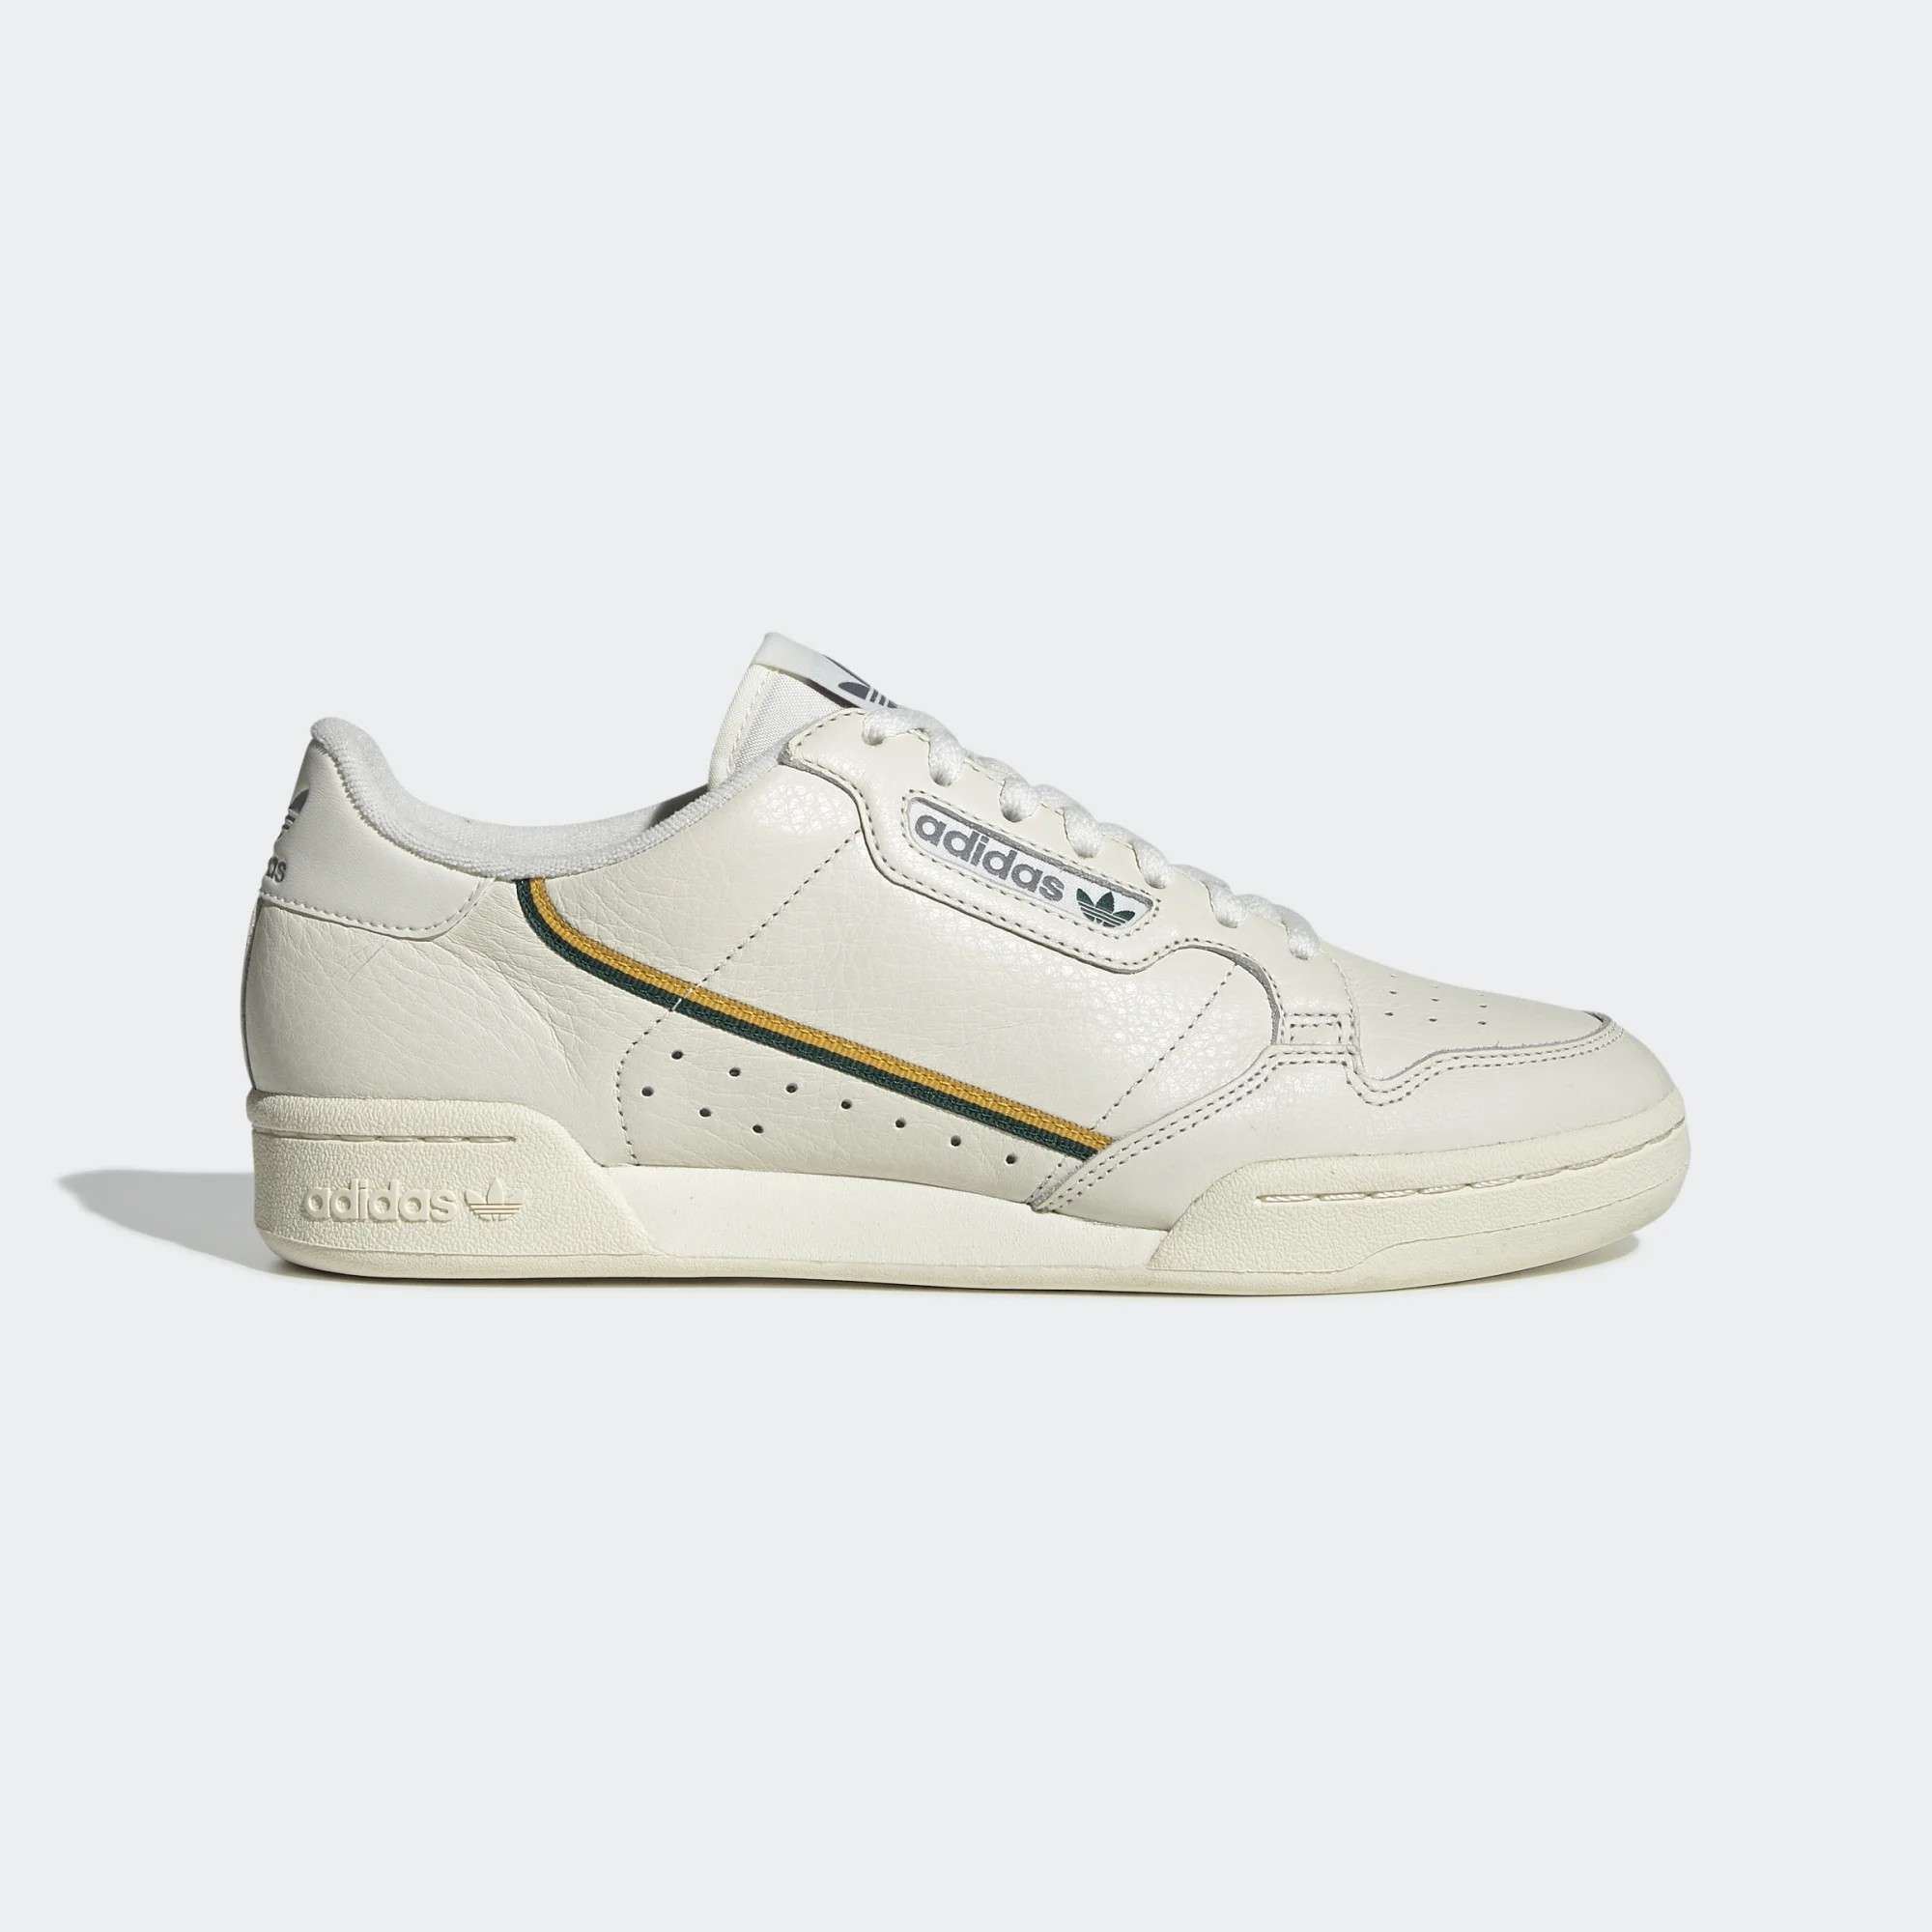 adidas Originals Continental 80s Off White/Active Gold EG2714